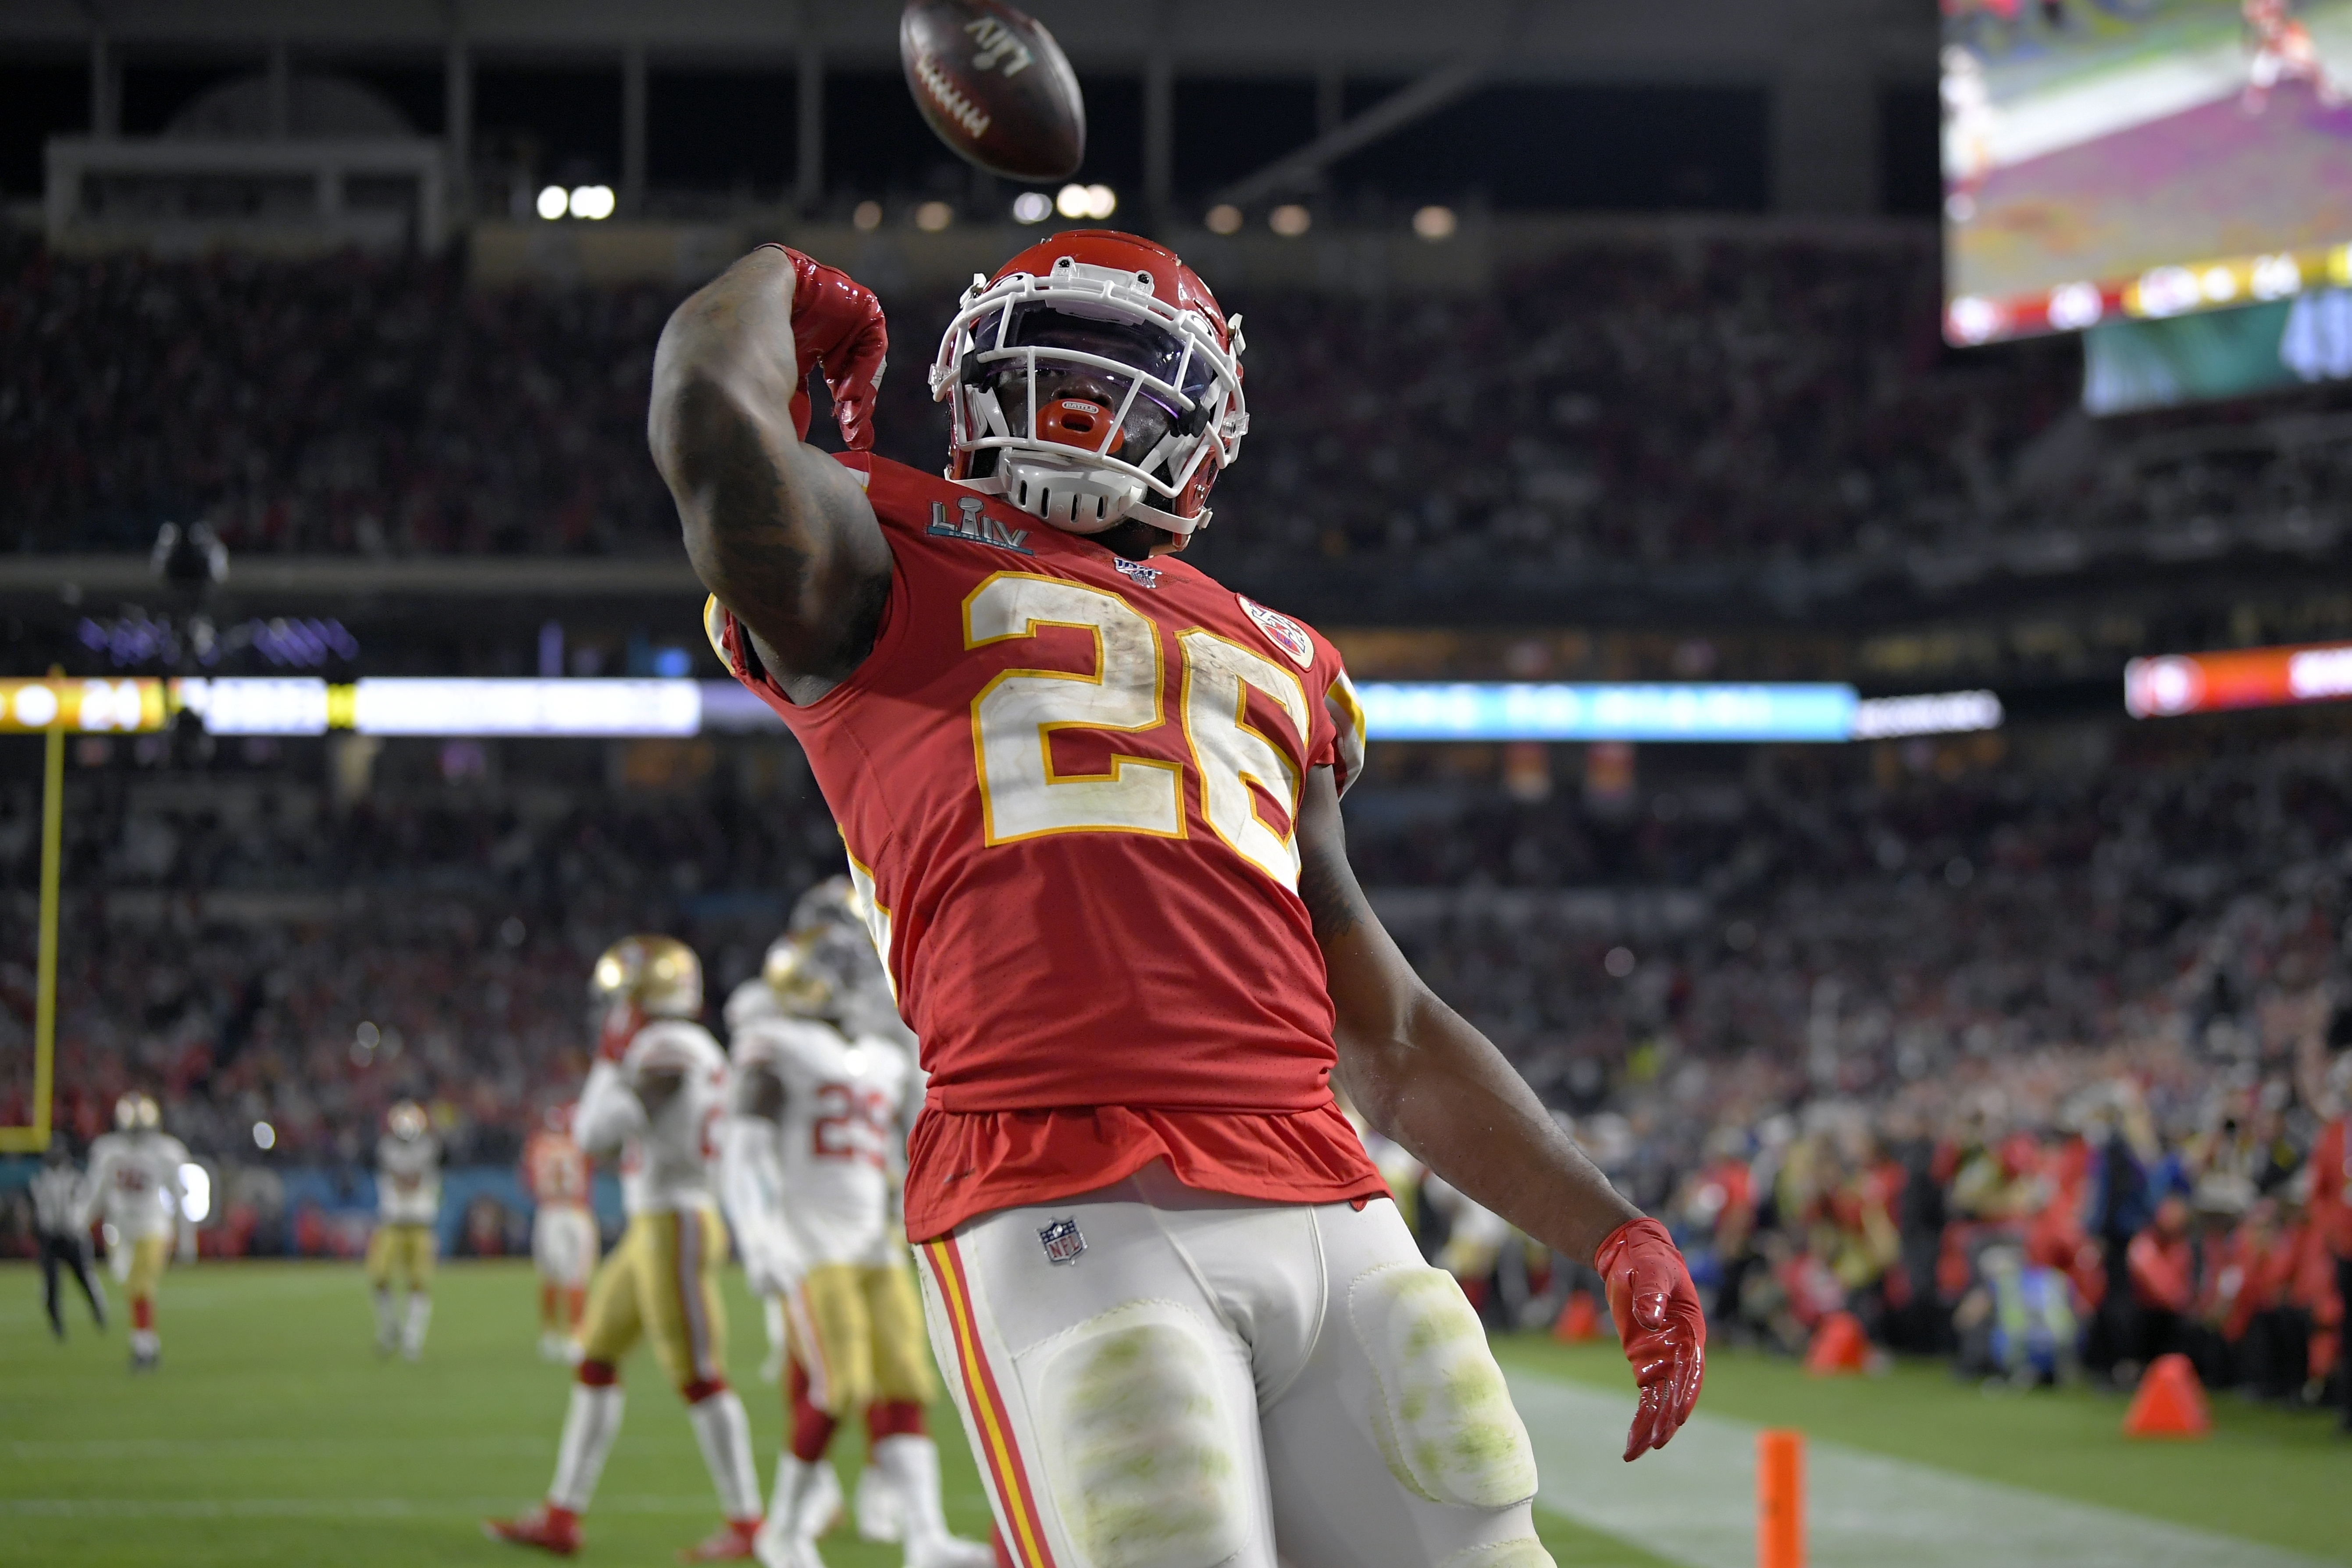 Williams Late Tds Help Kc Rally Past 49ers In Super Bowl Krqe News 13 A delayed game is eventually good, shigeru miyamoto once said about ocarina. copyright 2020 the associated press all rights reserved